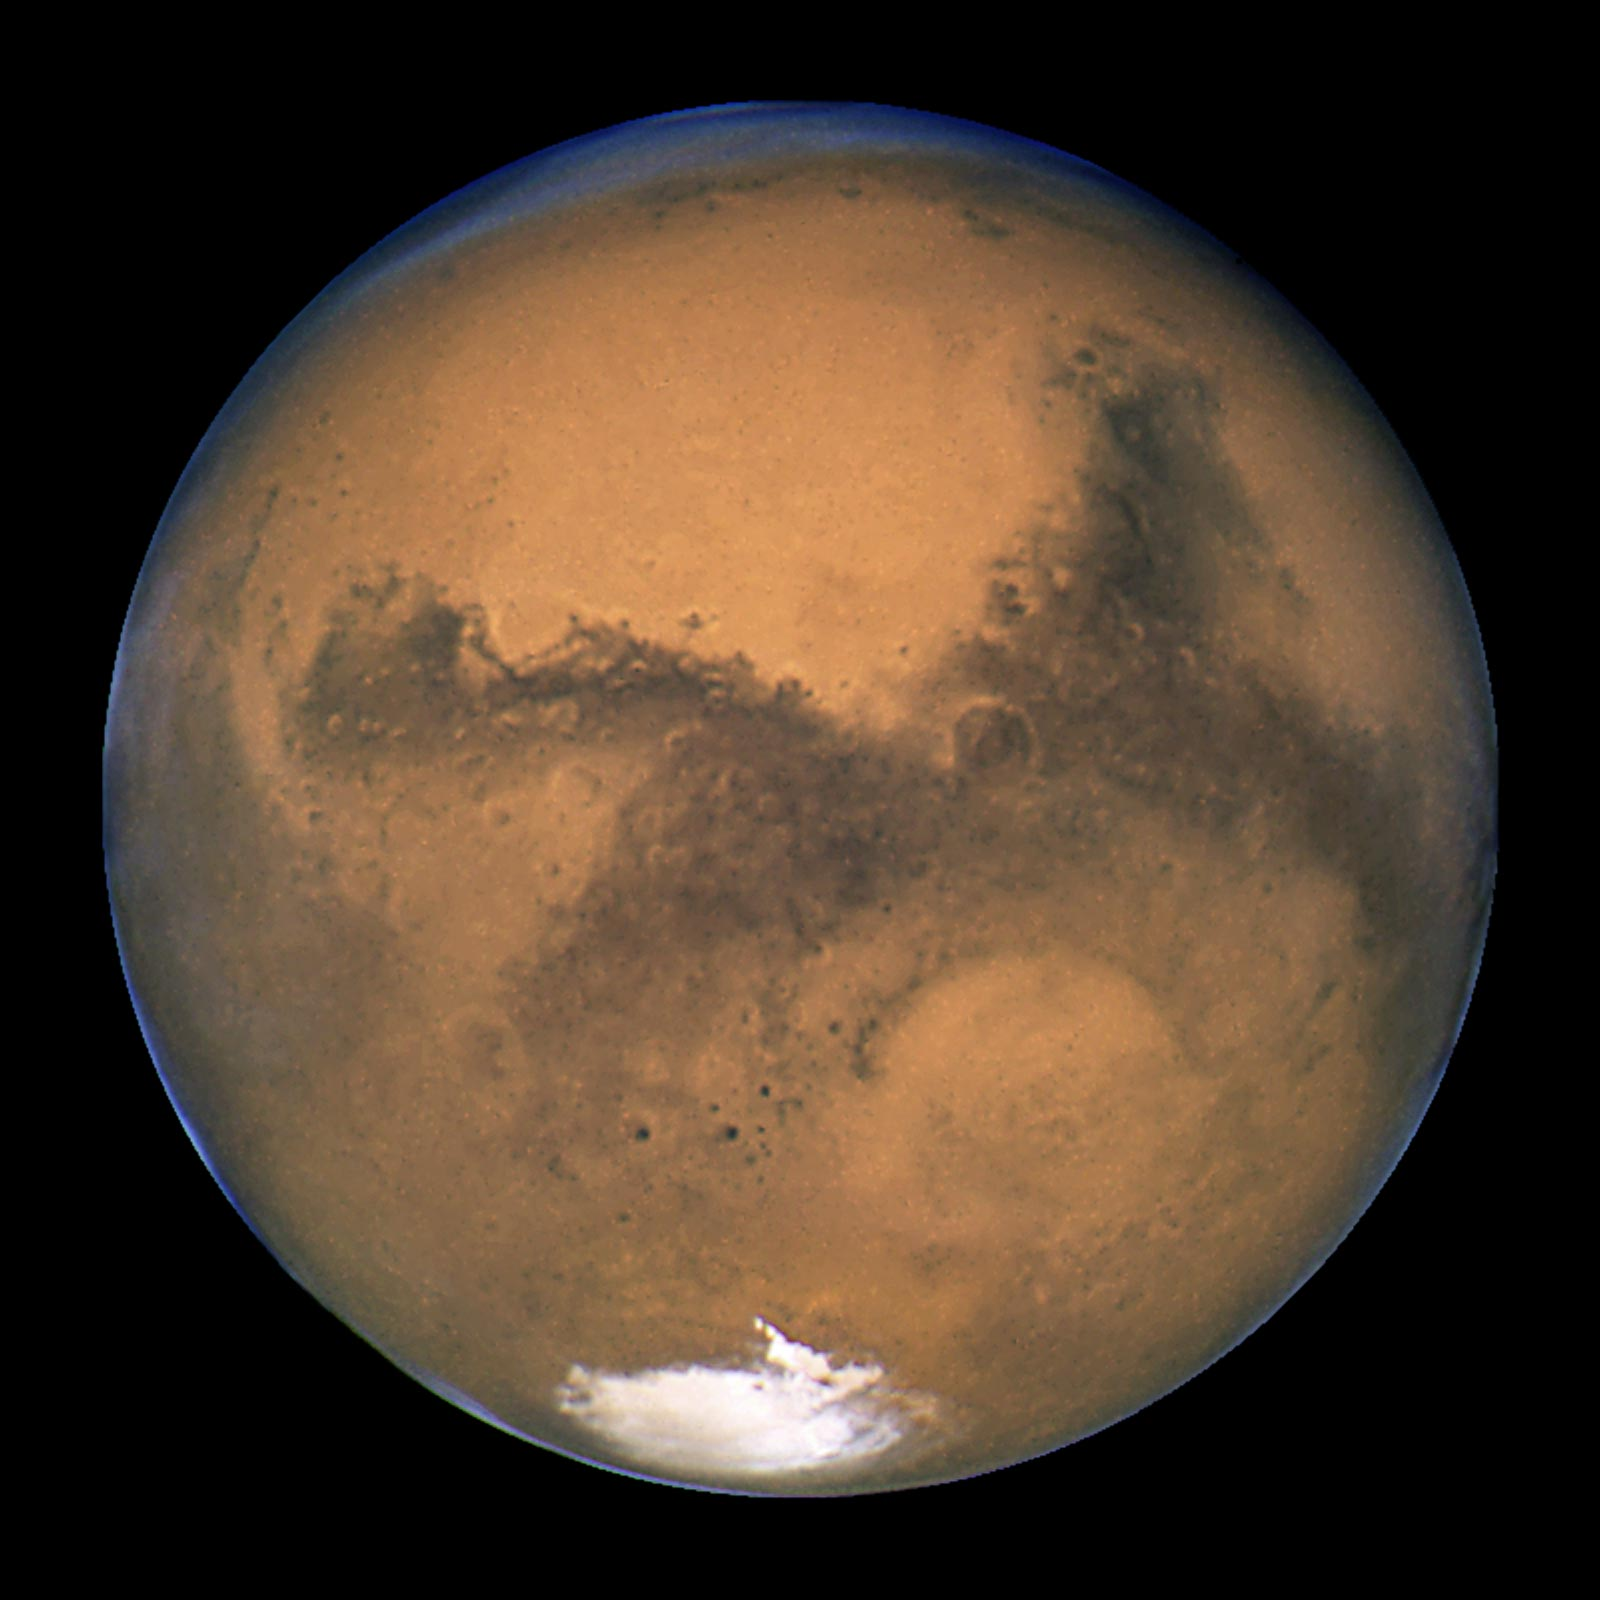 overview mars solar system exploration nasa science